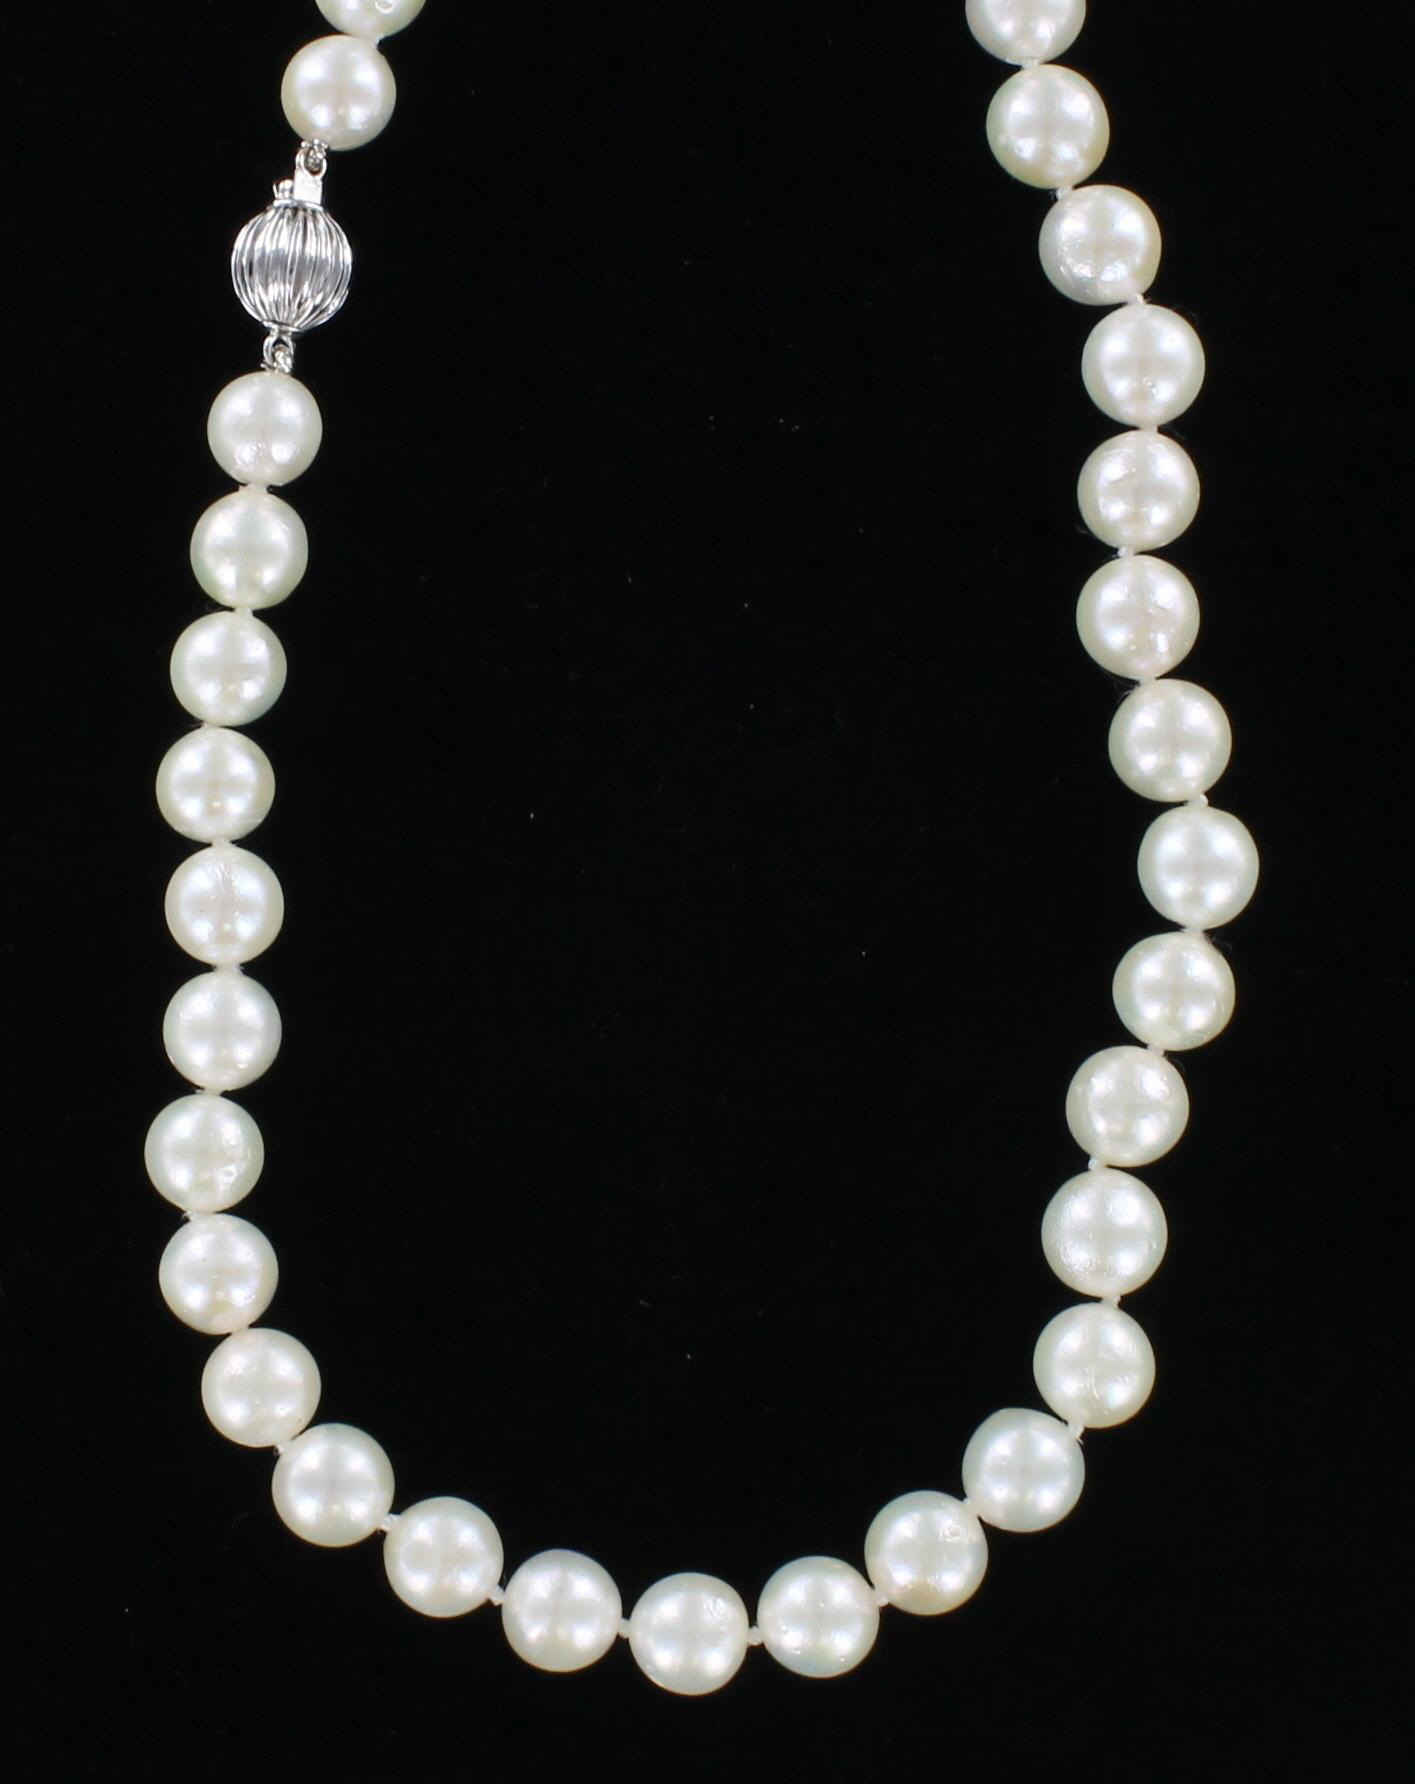 14KT PEARL NECKLACE